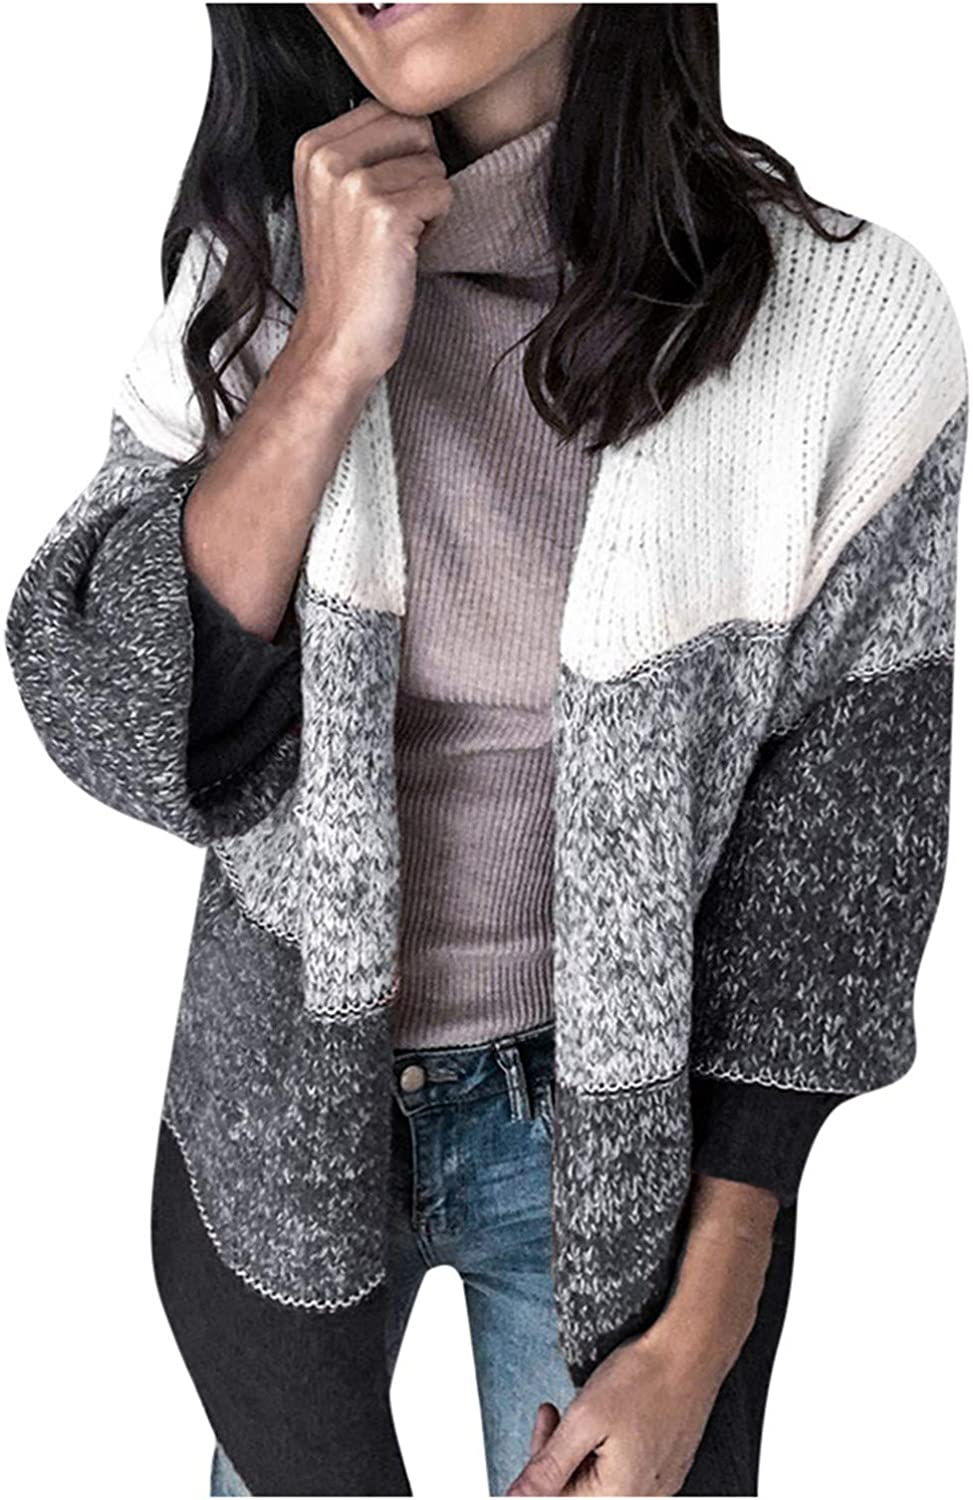 Women Knitted Cardigan Sweater Long Sleeve V Neck Button Down Short Navel Knit Cardigan Sweaters Outerwear Tops